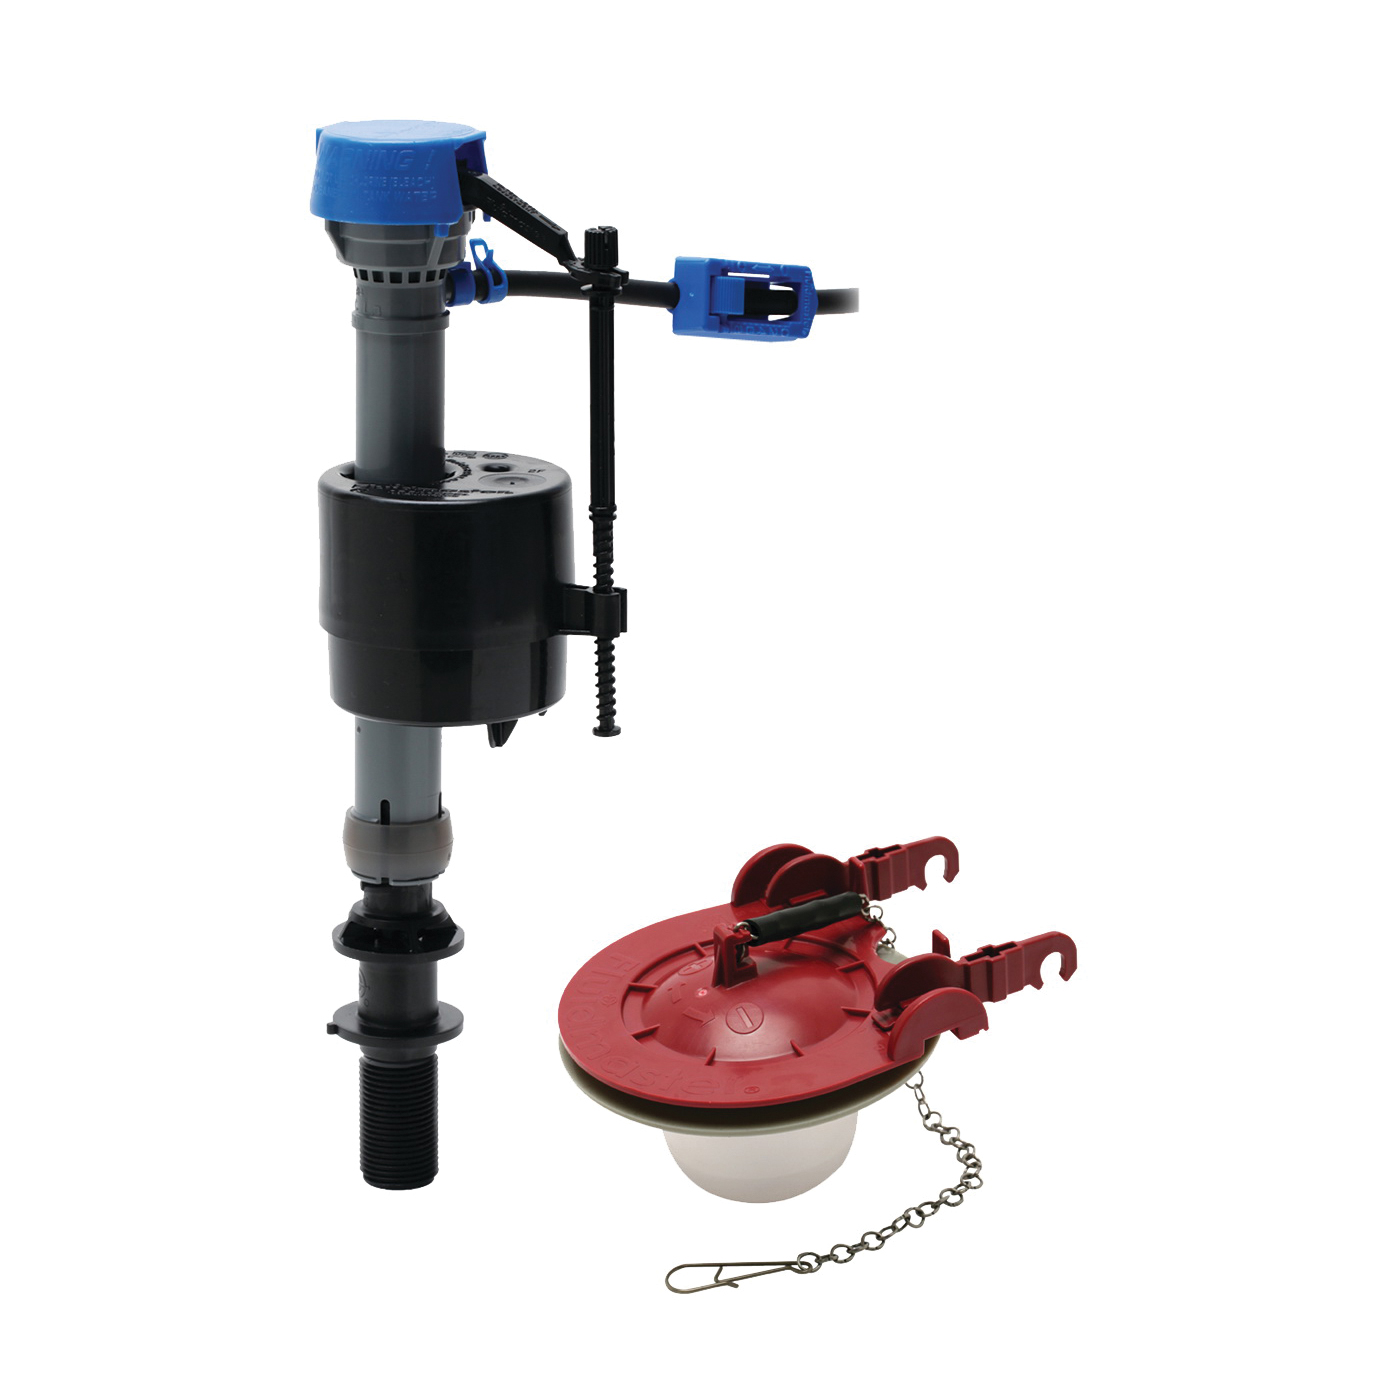 Picture of FLUIDMASTER PerforMAX 400CAR3P5 Toilet Fill Valve and Flapper Kit, Plastic Body, Anti-Siphon: Yes